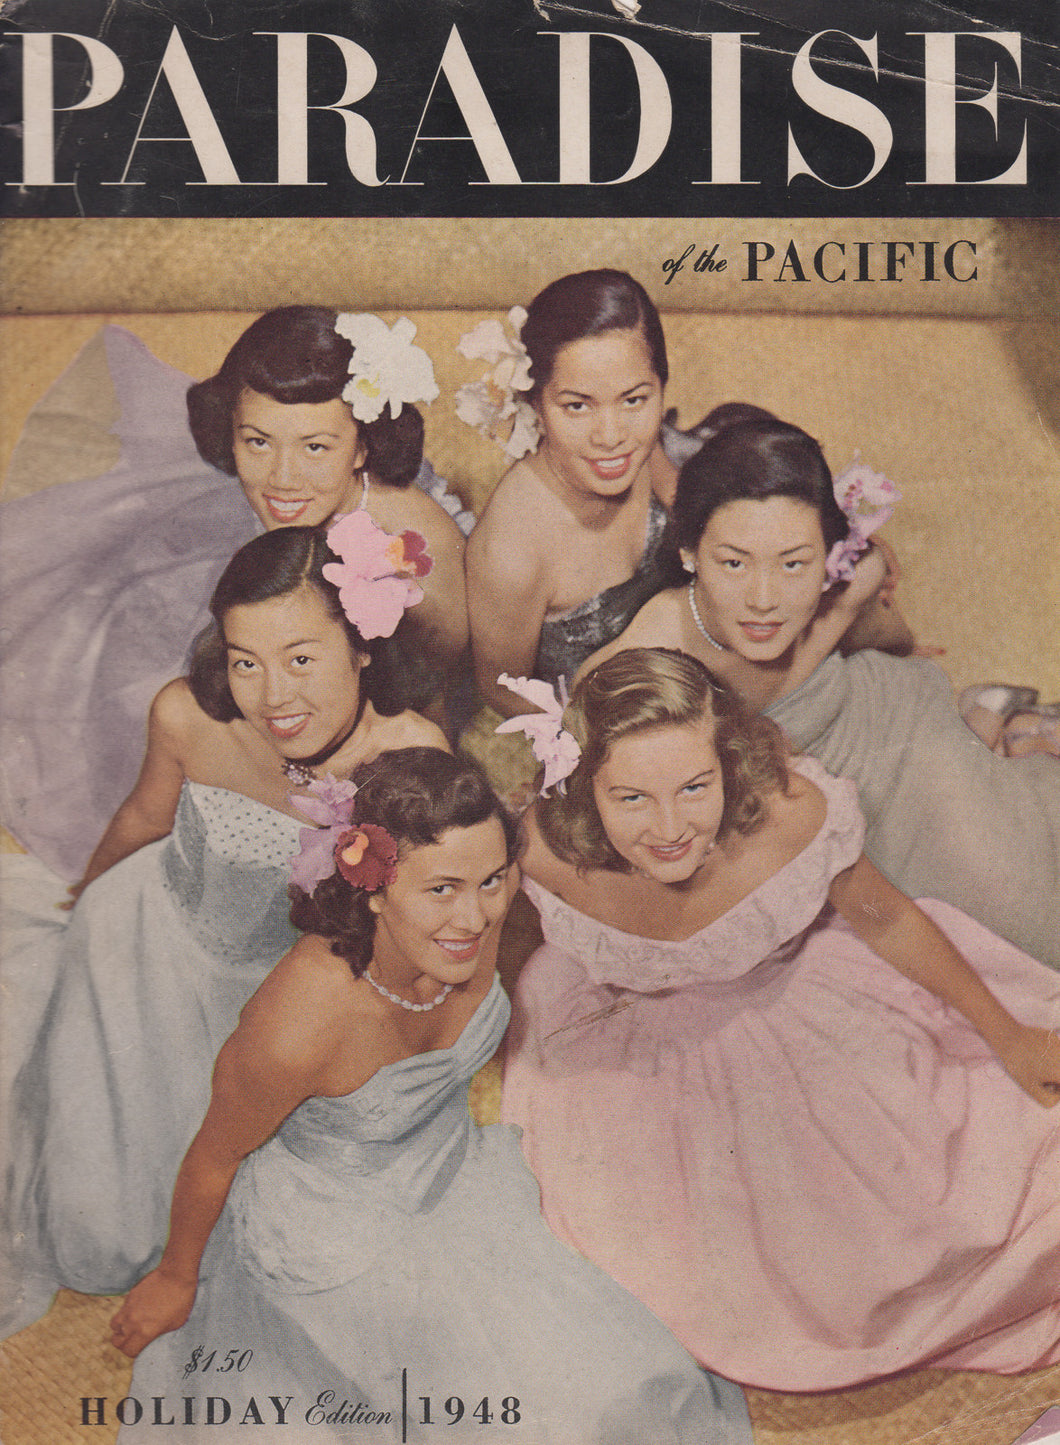 Paradise of the Pacific 1948